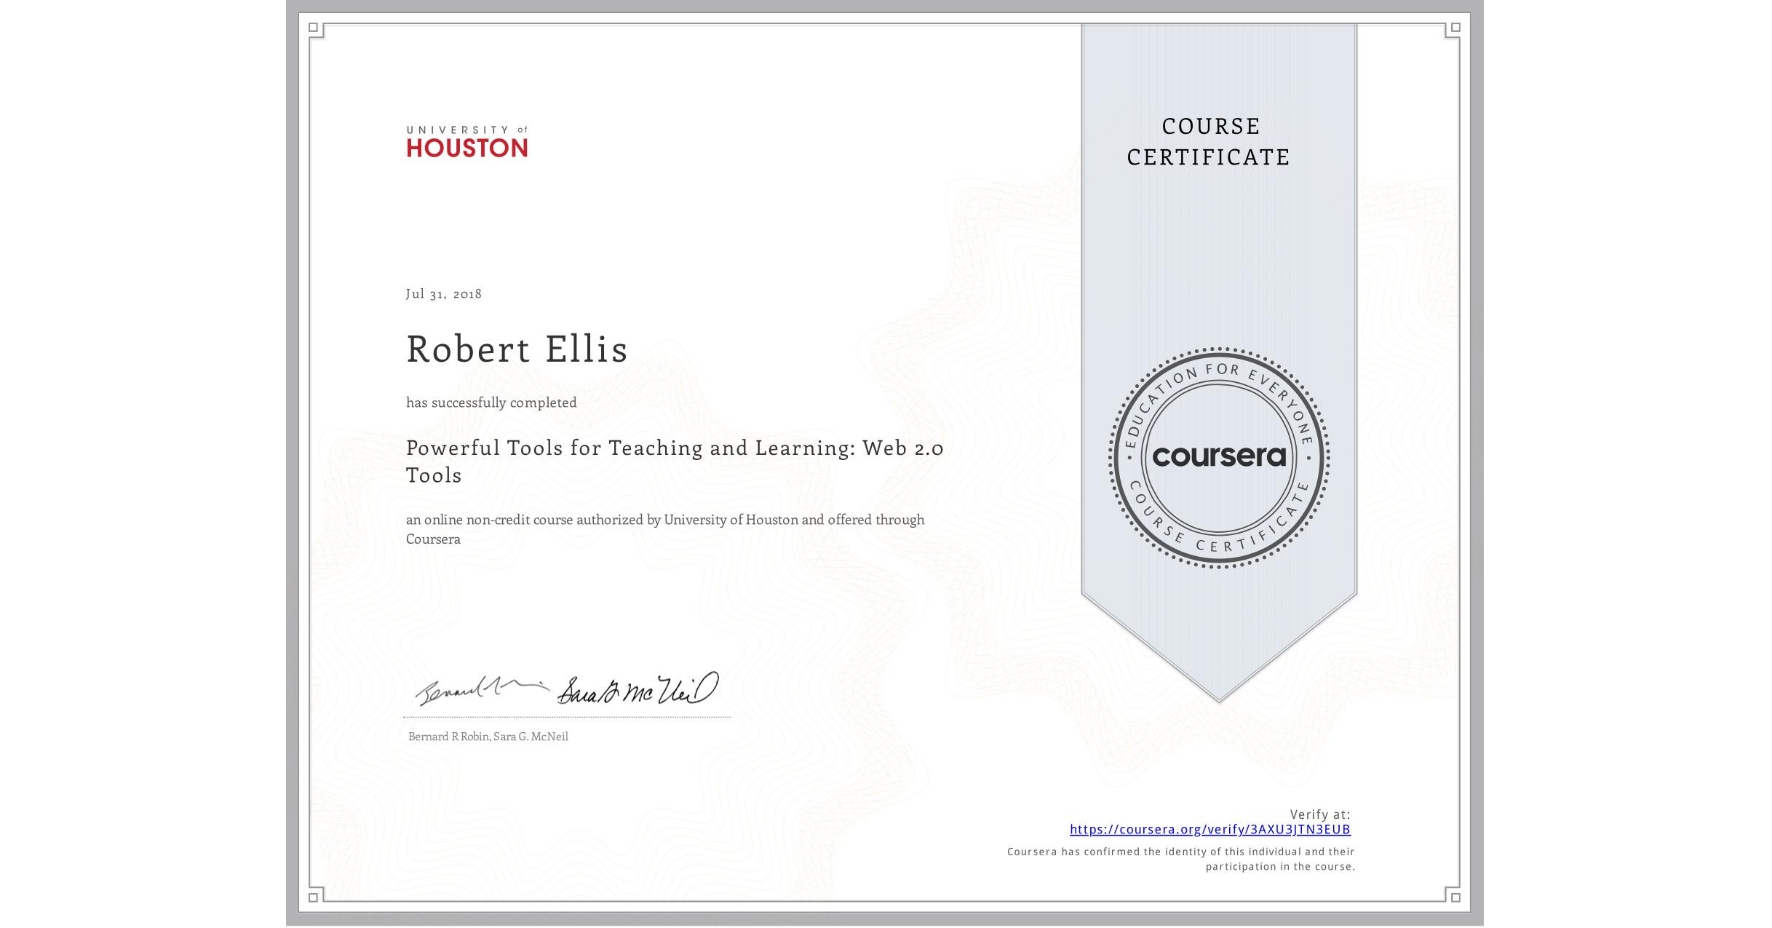 View certificate for Robert Ellis, Powerful Tools for Teaching and Learning: Web 2.0 Tools, an online non-credit course authorized by University of Houston and offered through Coursera